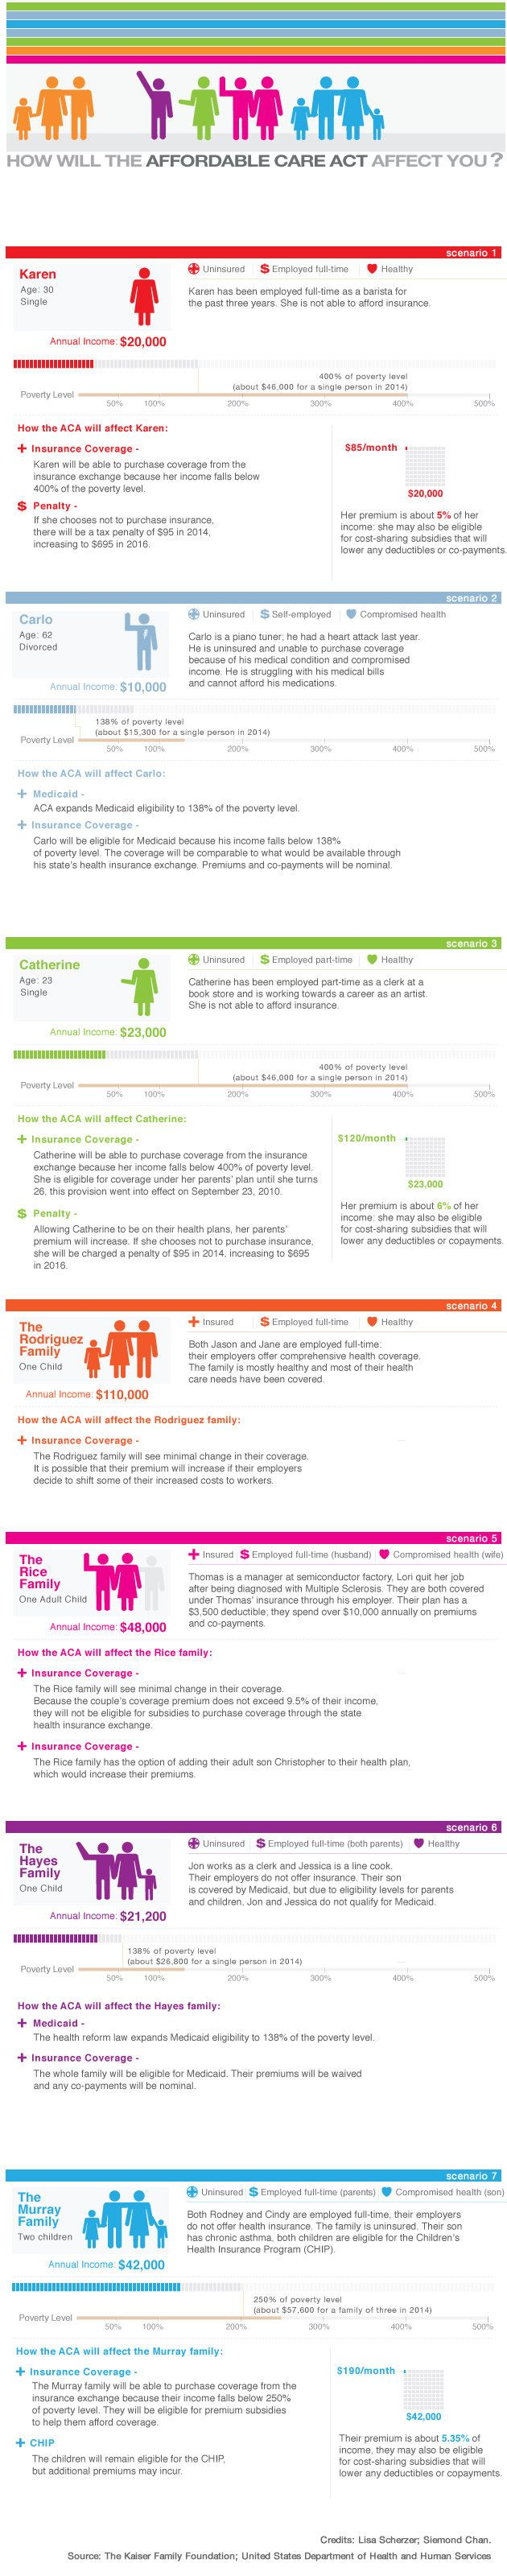 How Will the Affordable Care Act Affect You? Affordable